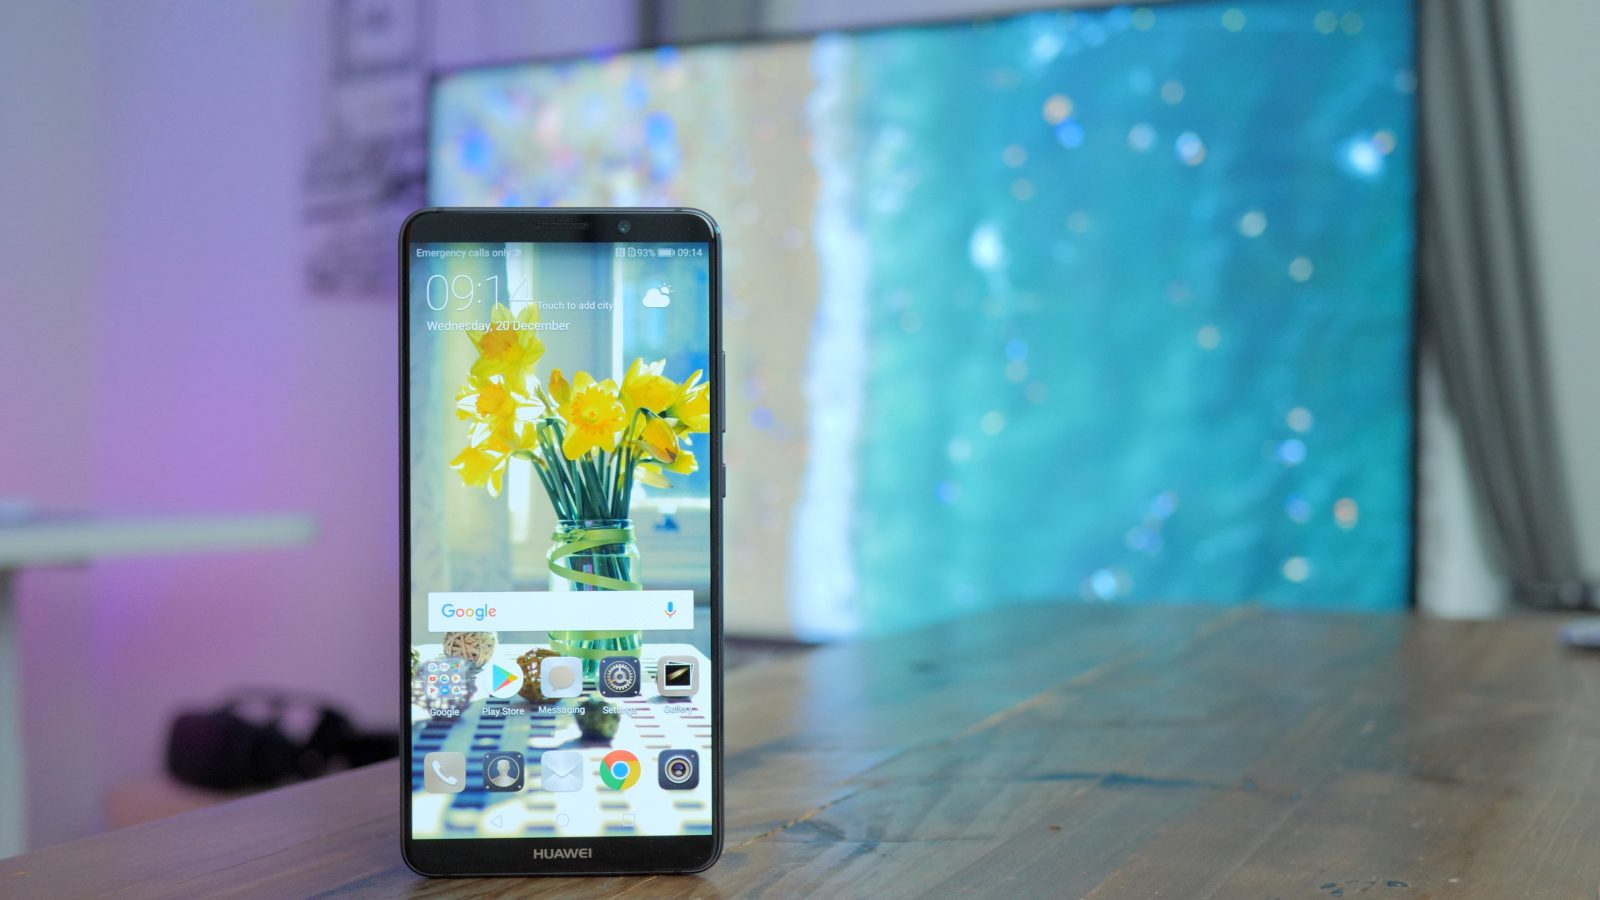 Hands-on with the Huawei Mate 10 Pro's long lasting, AI-powered